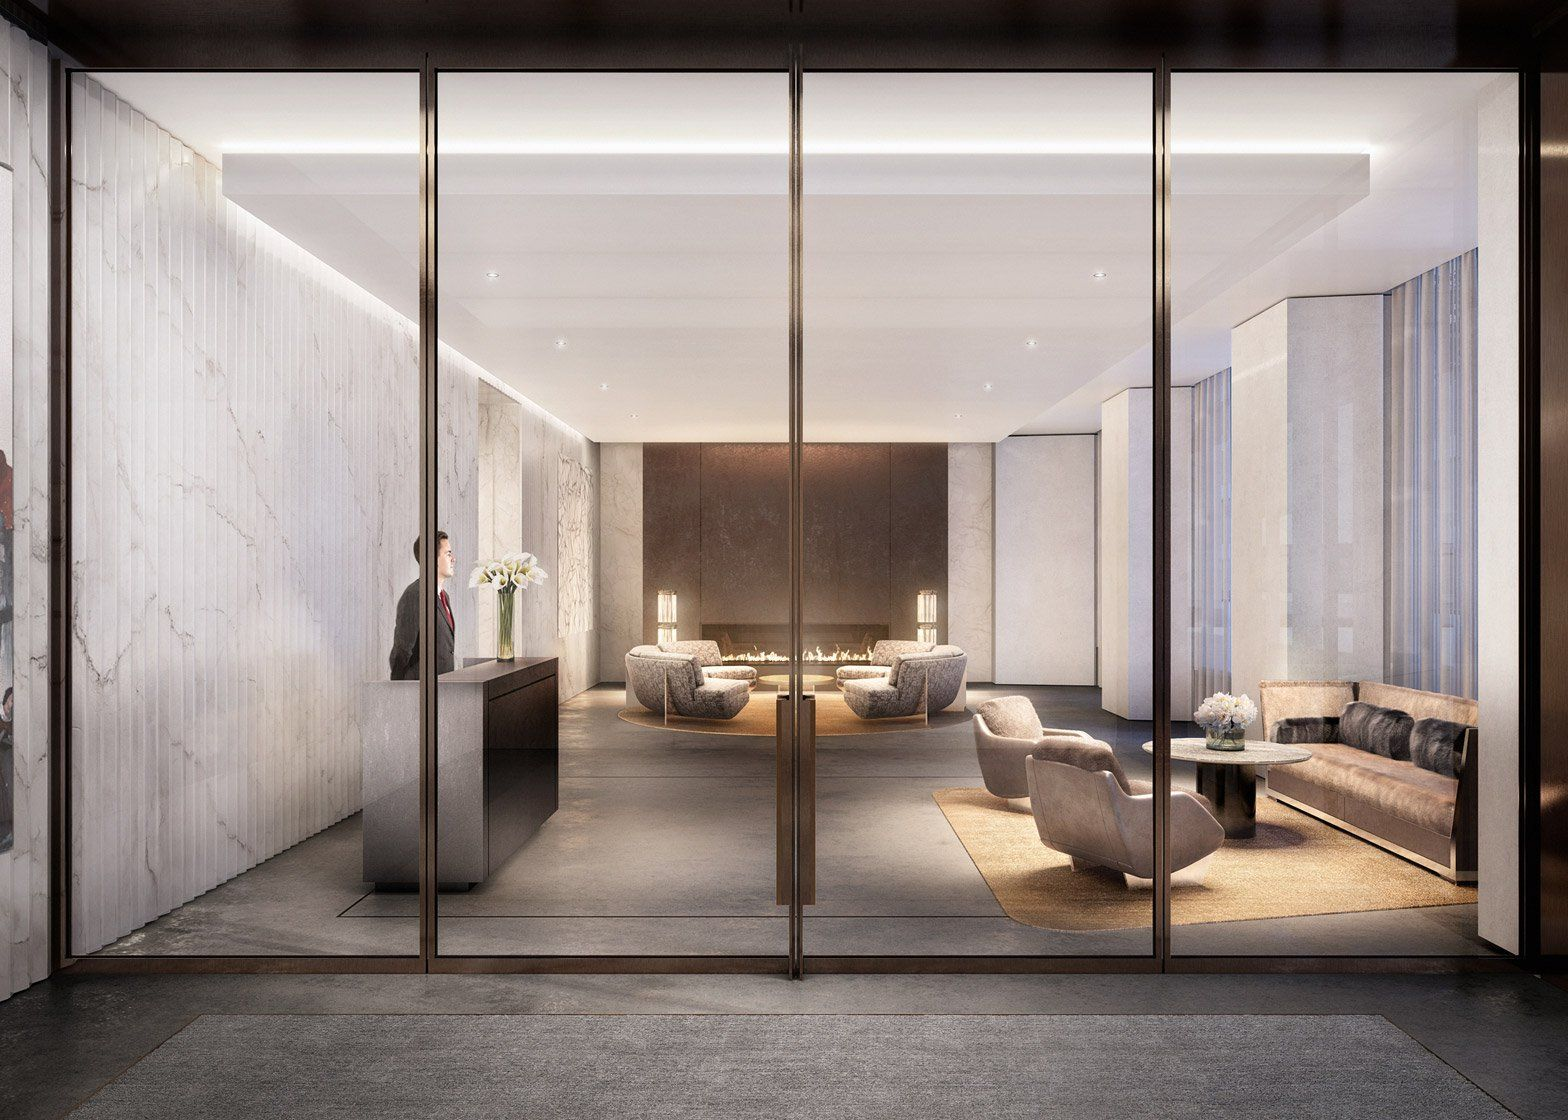 Foster S One Hundred East Fifty Third Street Residential Skyscraper Norman Foster Nyc Condo Interior Rendering